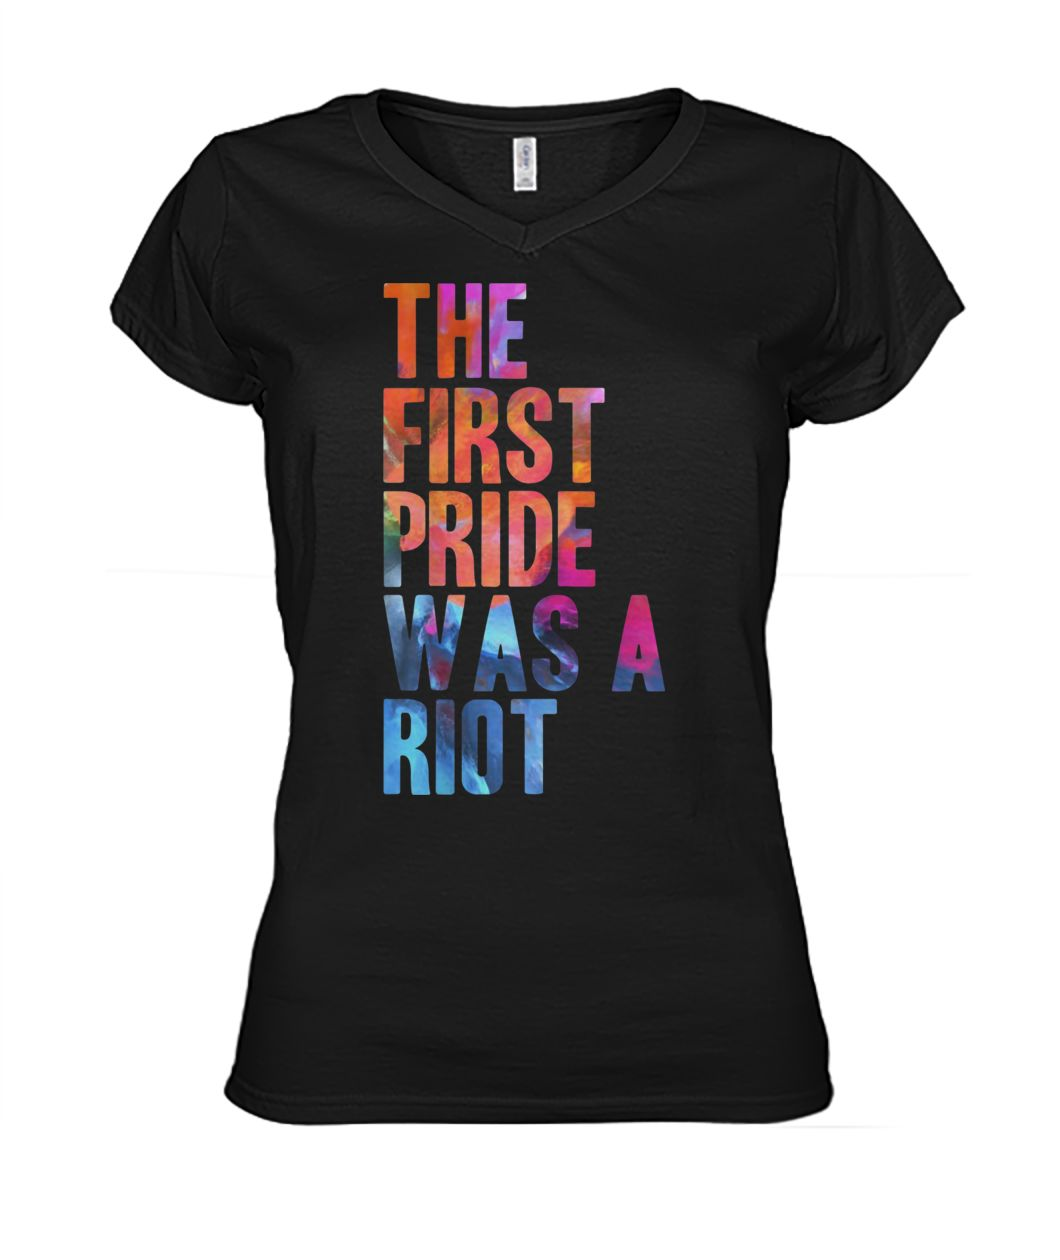 The first gay pride was a riot for lgbt pride women's v-neck